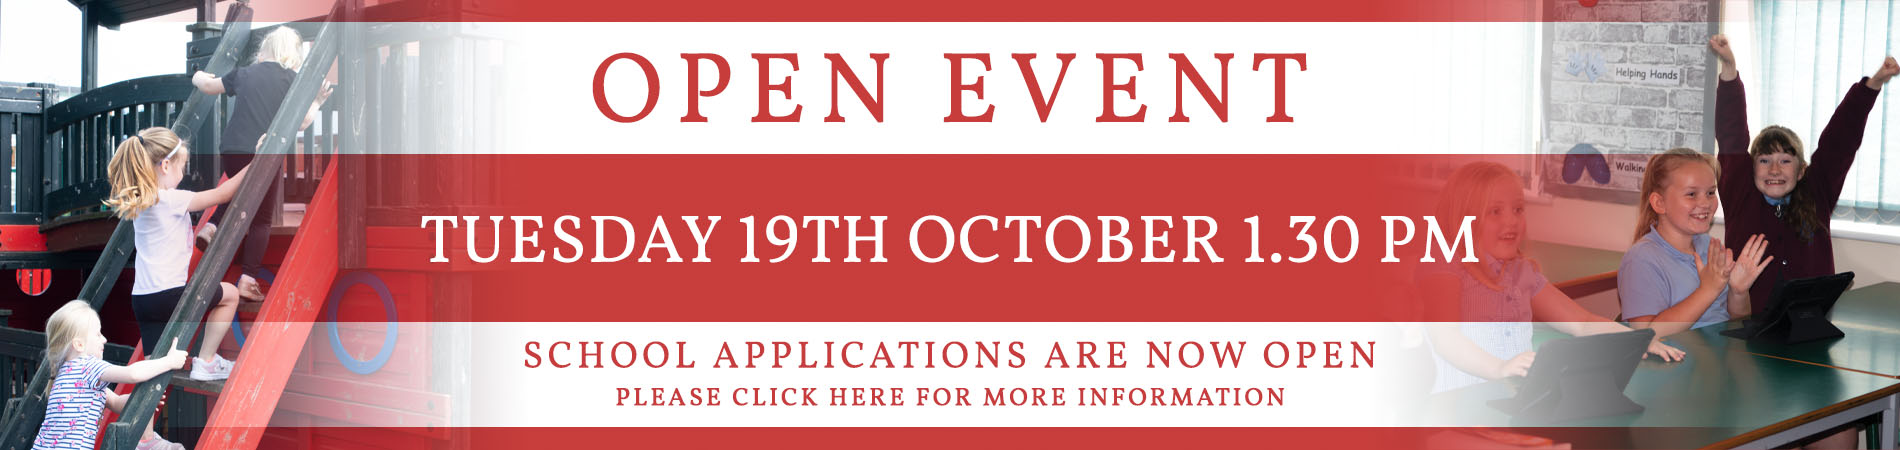 Open Event Banner (19th Oct)